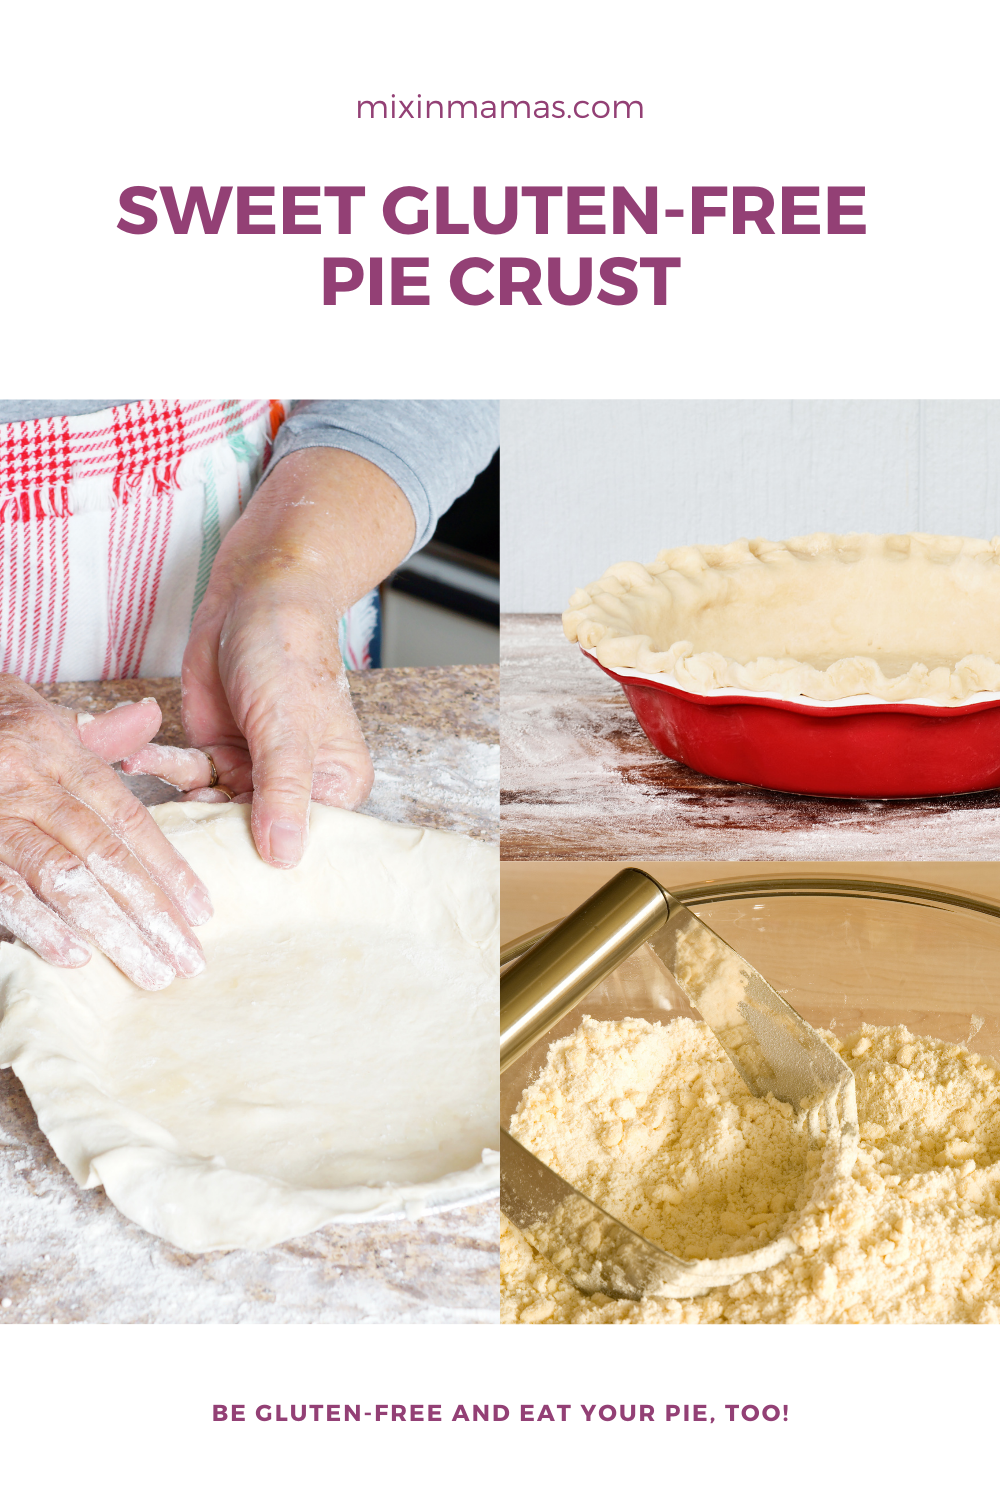 sweet gluten-free pie crust: be gluten-free and eat your pie, too!